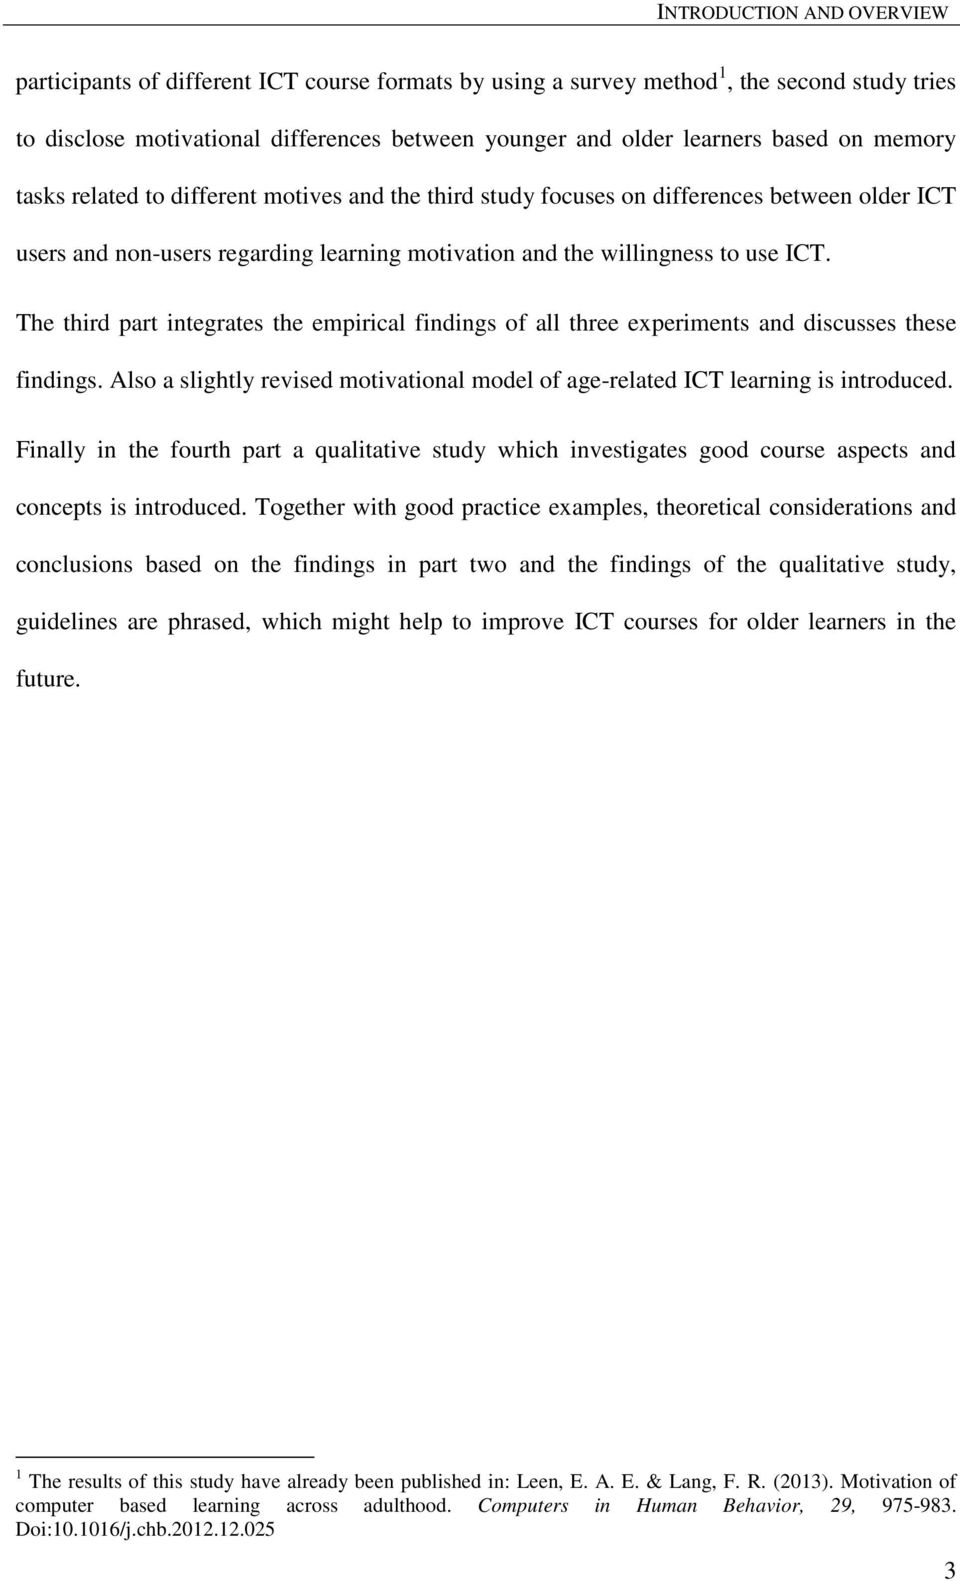 The third part integrates the empirical findings of all three experiments and discusses these findings. Also a slightly revised motivational model of age-related ICT learning is introduced.